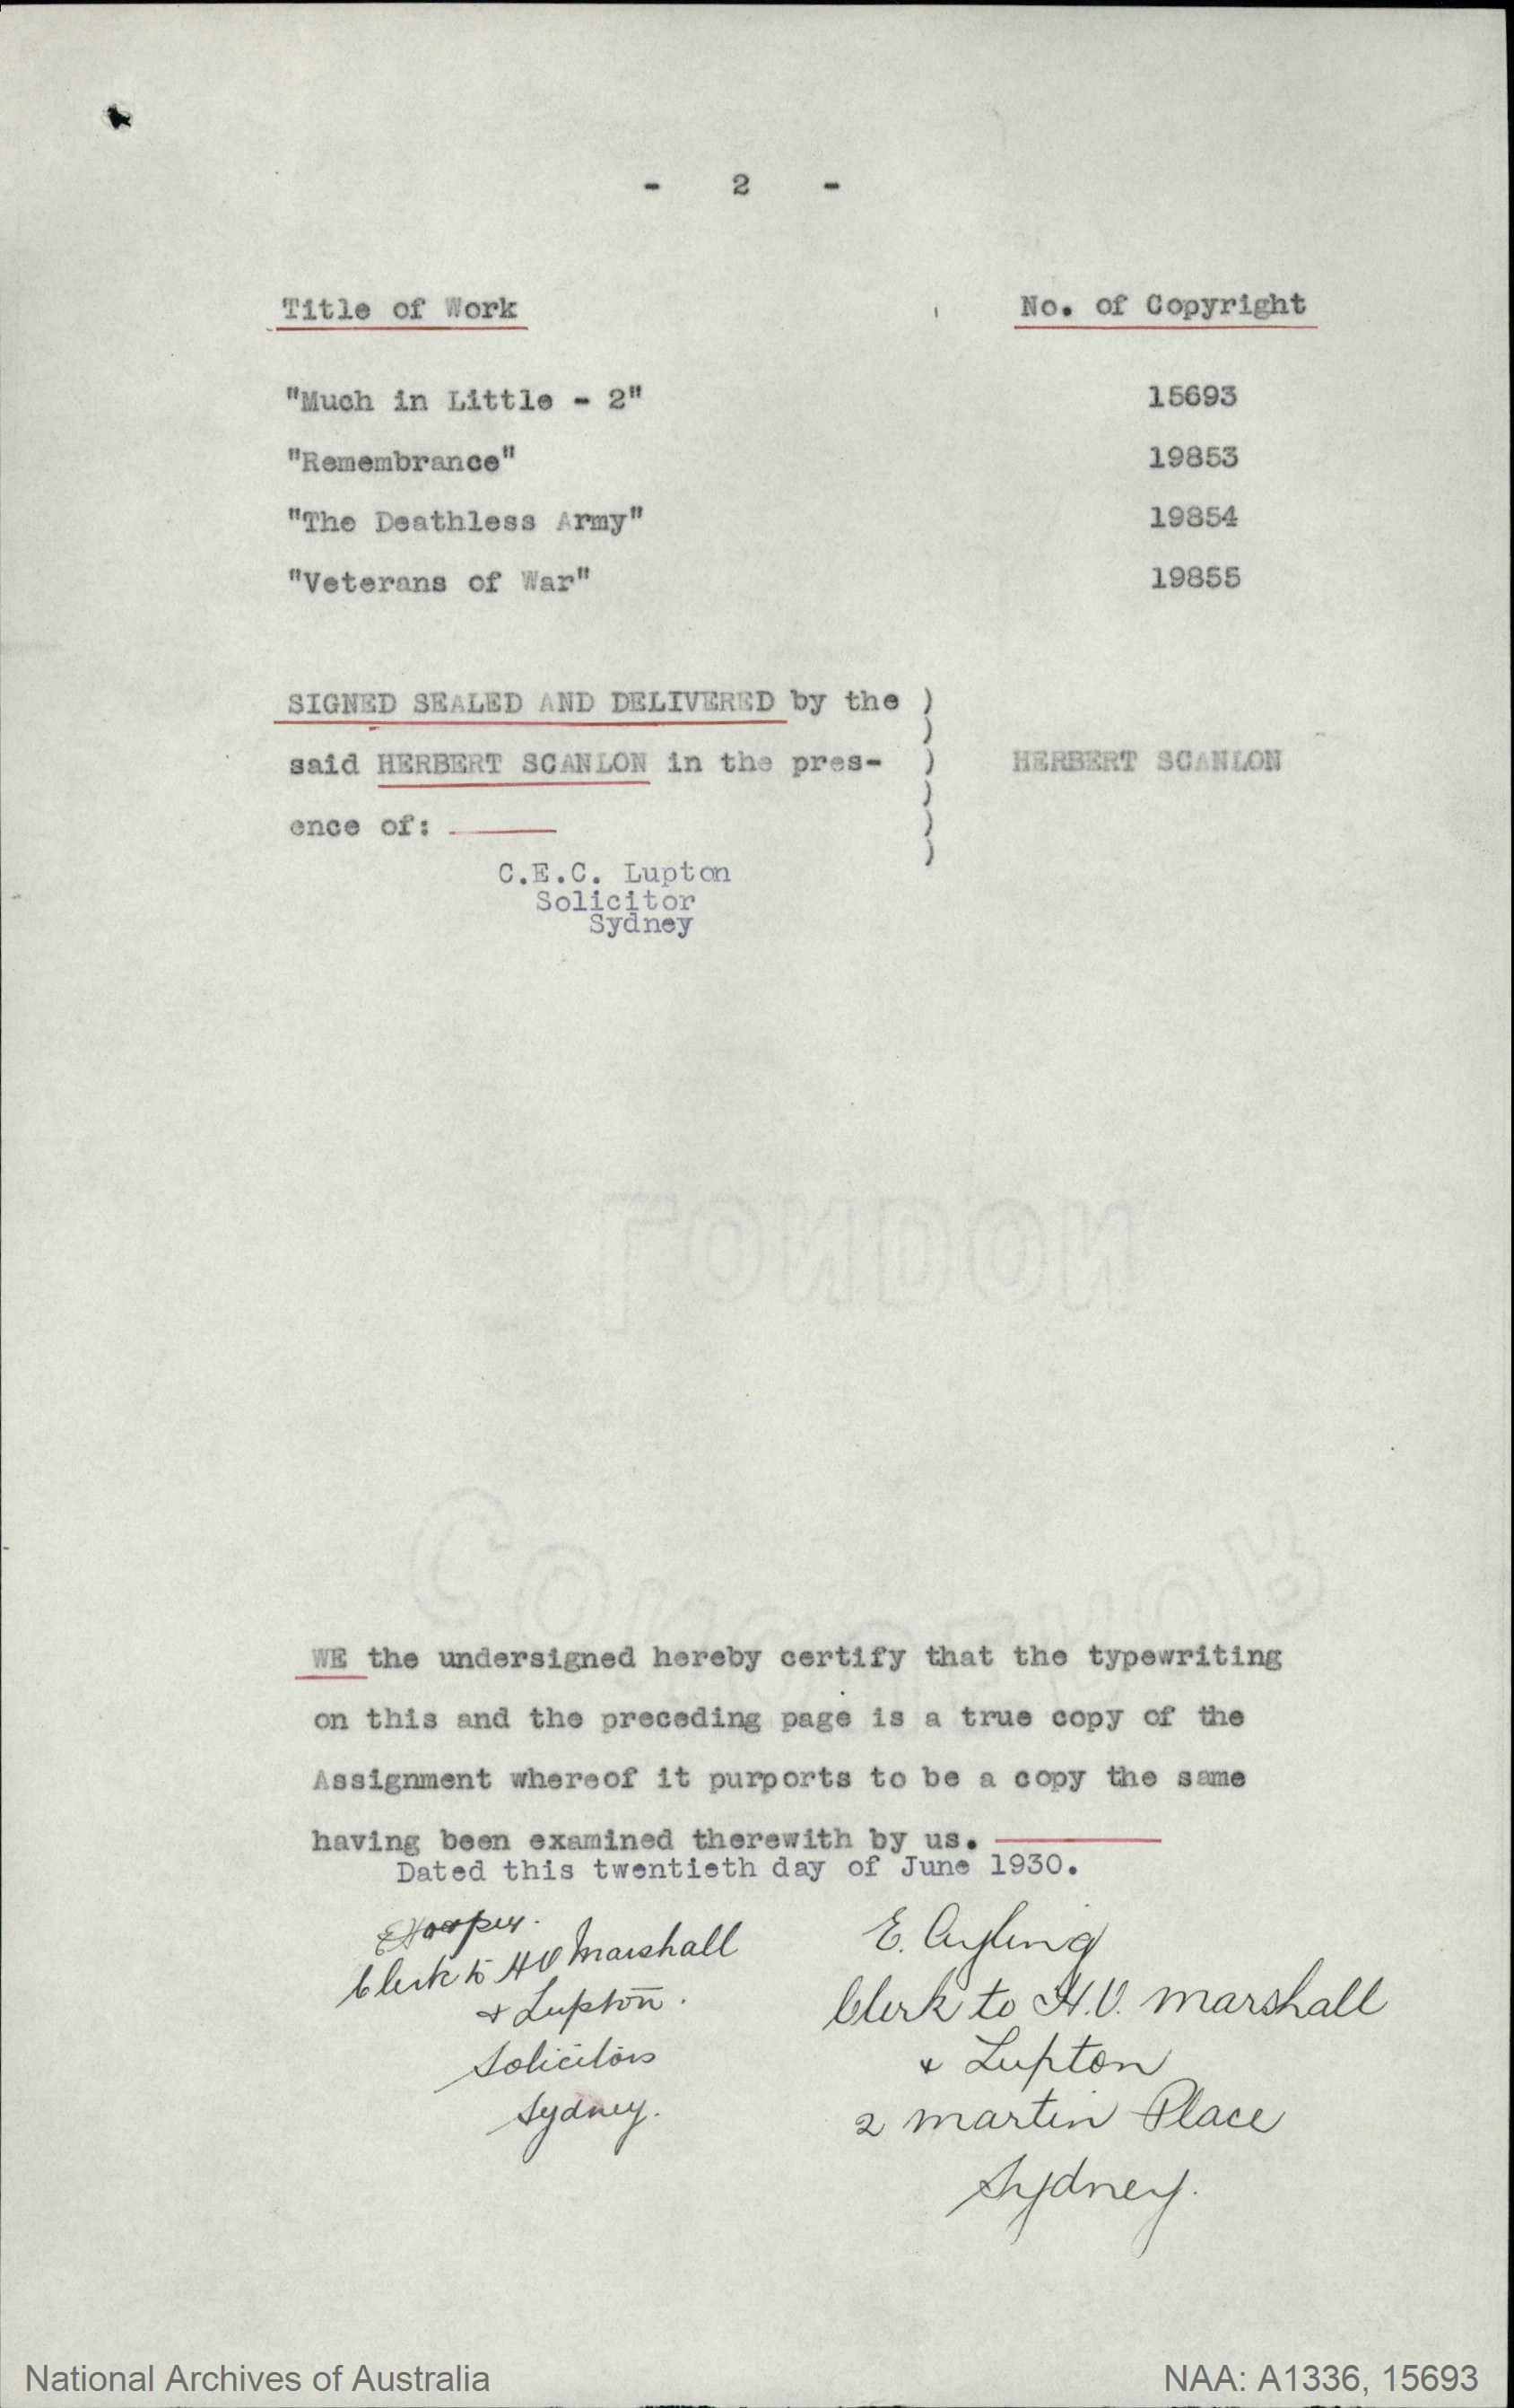 ... ADDRESS Sydney : TITLE OF WORK Much in Little Digger Stories (No 2) :  TYPE OF WORK Literary : APPLICANT Herbert Scanlon : DATE OF APPLICATION 20  Dec ...